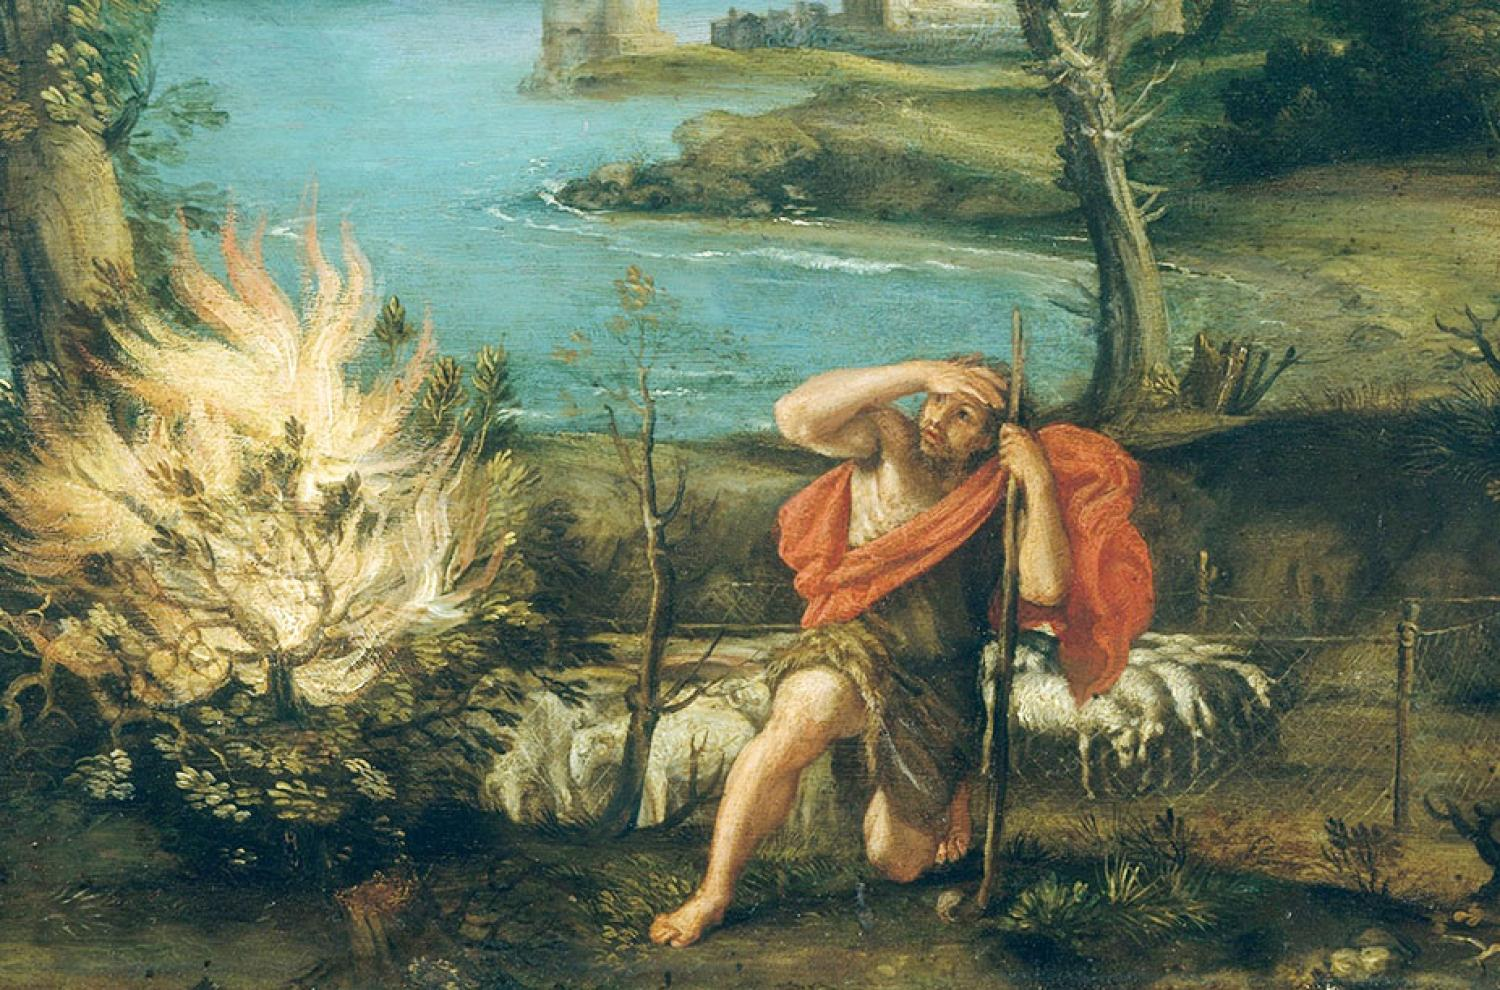 Landscape with Moses and the Burning Bush by Domenico Zampieri via The Met